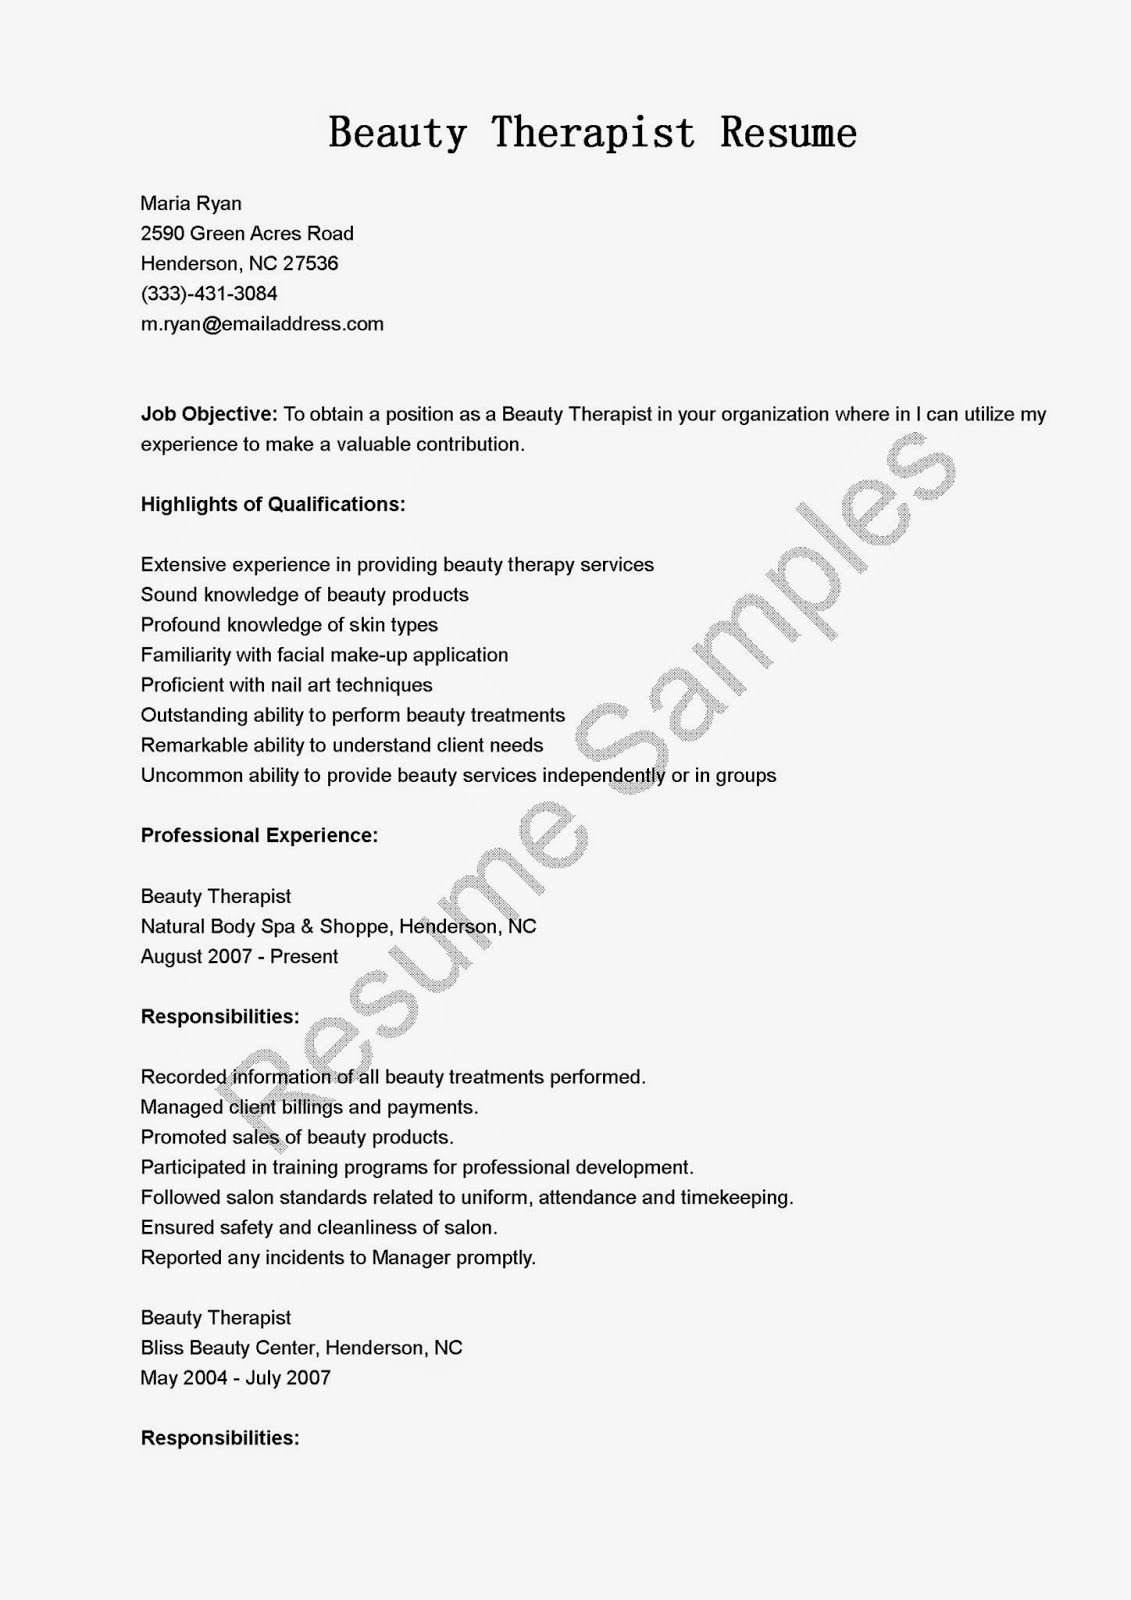 resume samples  beauty therapist resume sample